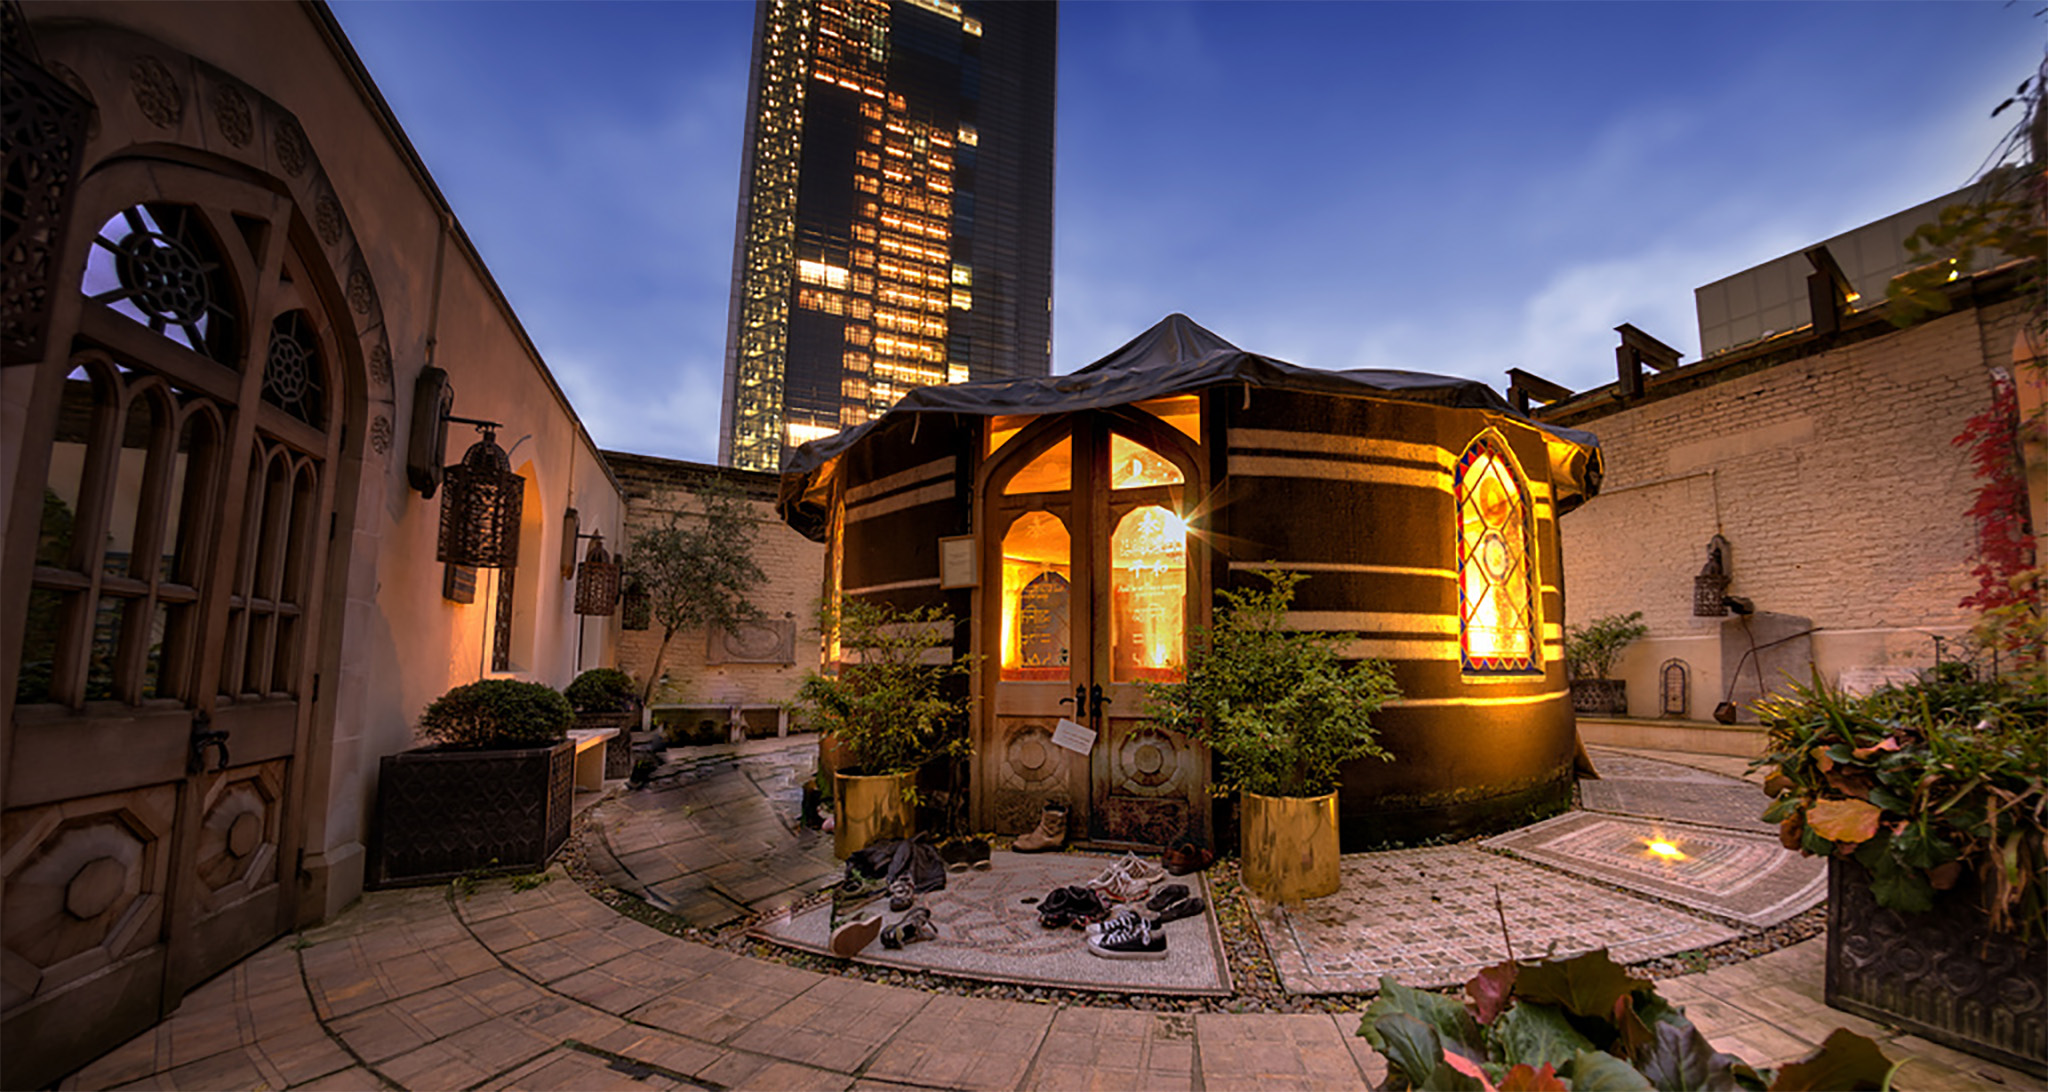 Book The Bedouin Tent At 78 Bishopsgate  St  Ethelburga U0026 39 S